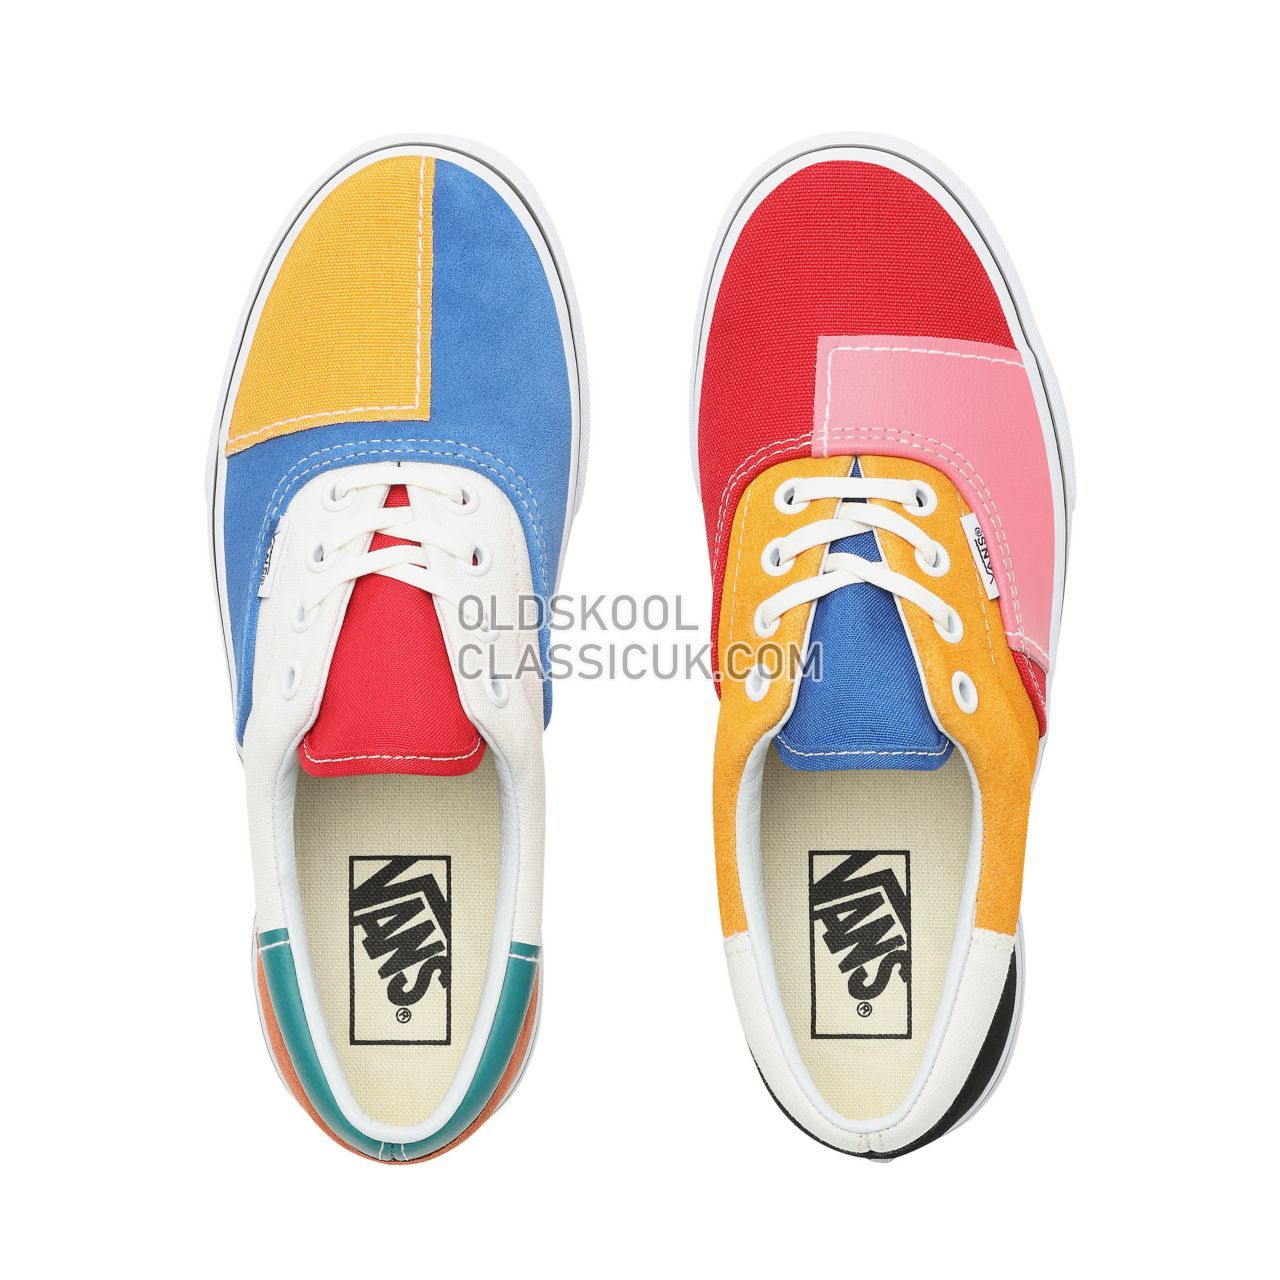 Vans Patchwork Era Sneakers Womens (Patchwork) Multi/True White VN0A38FRVMF Shoes